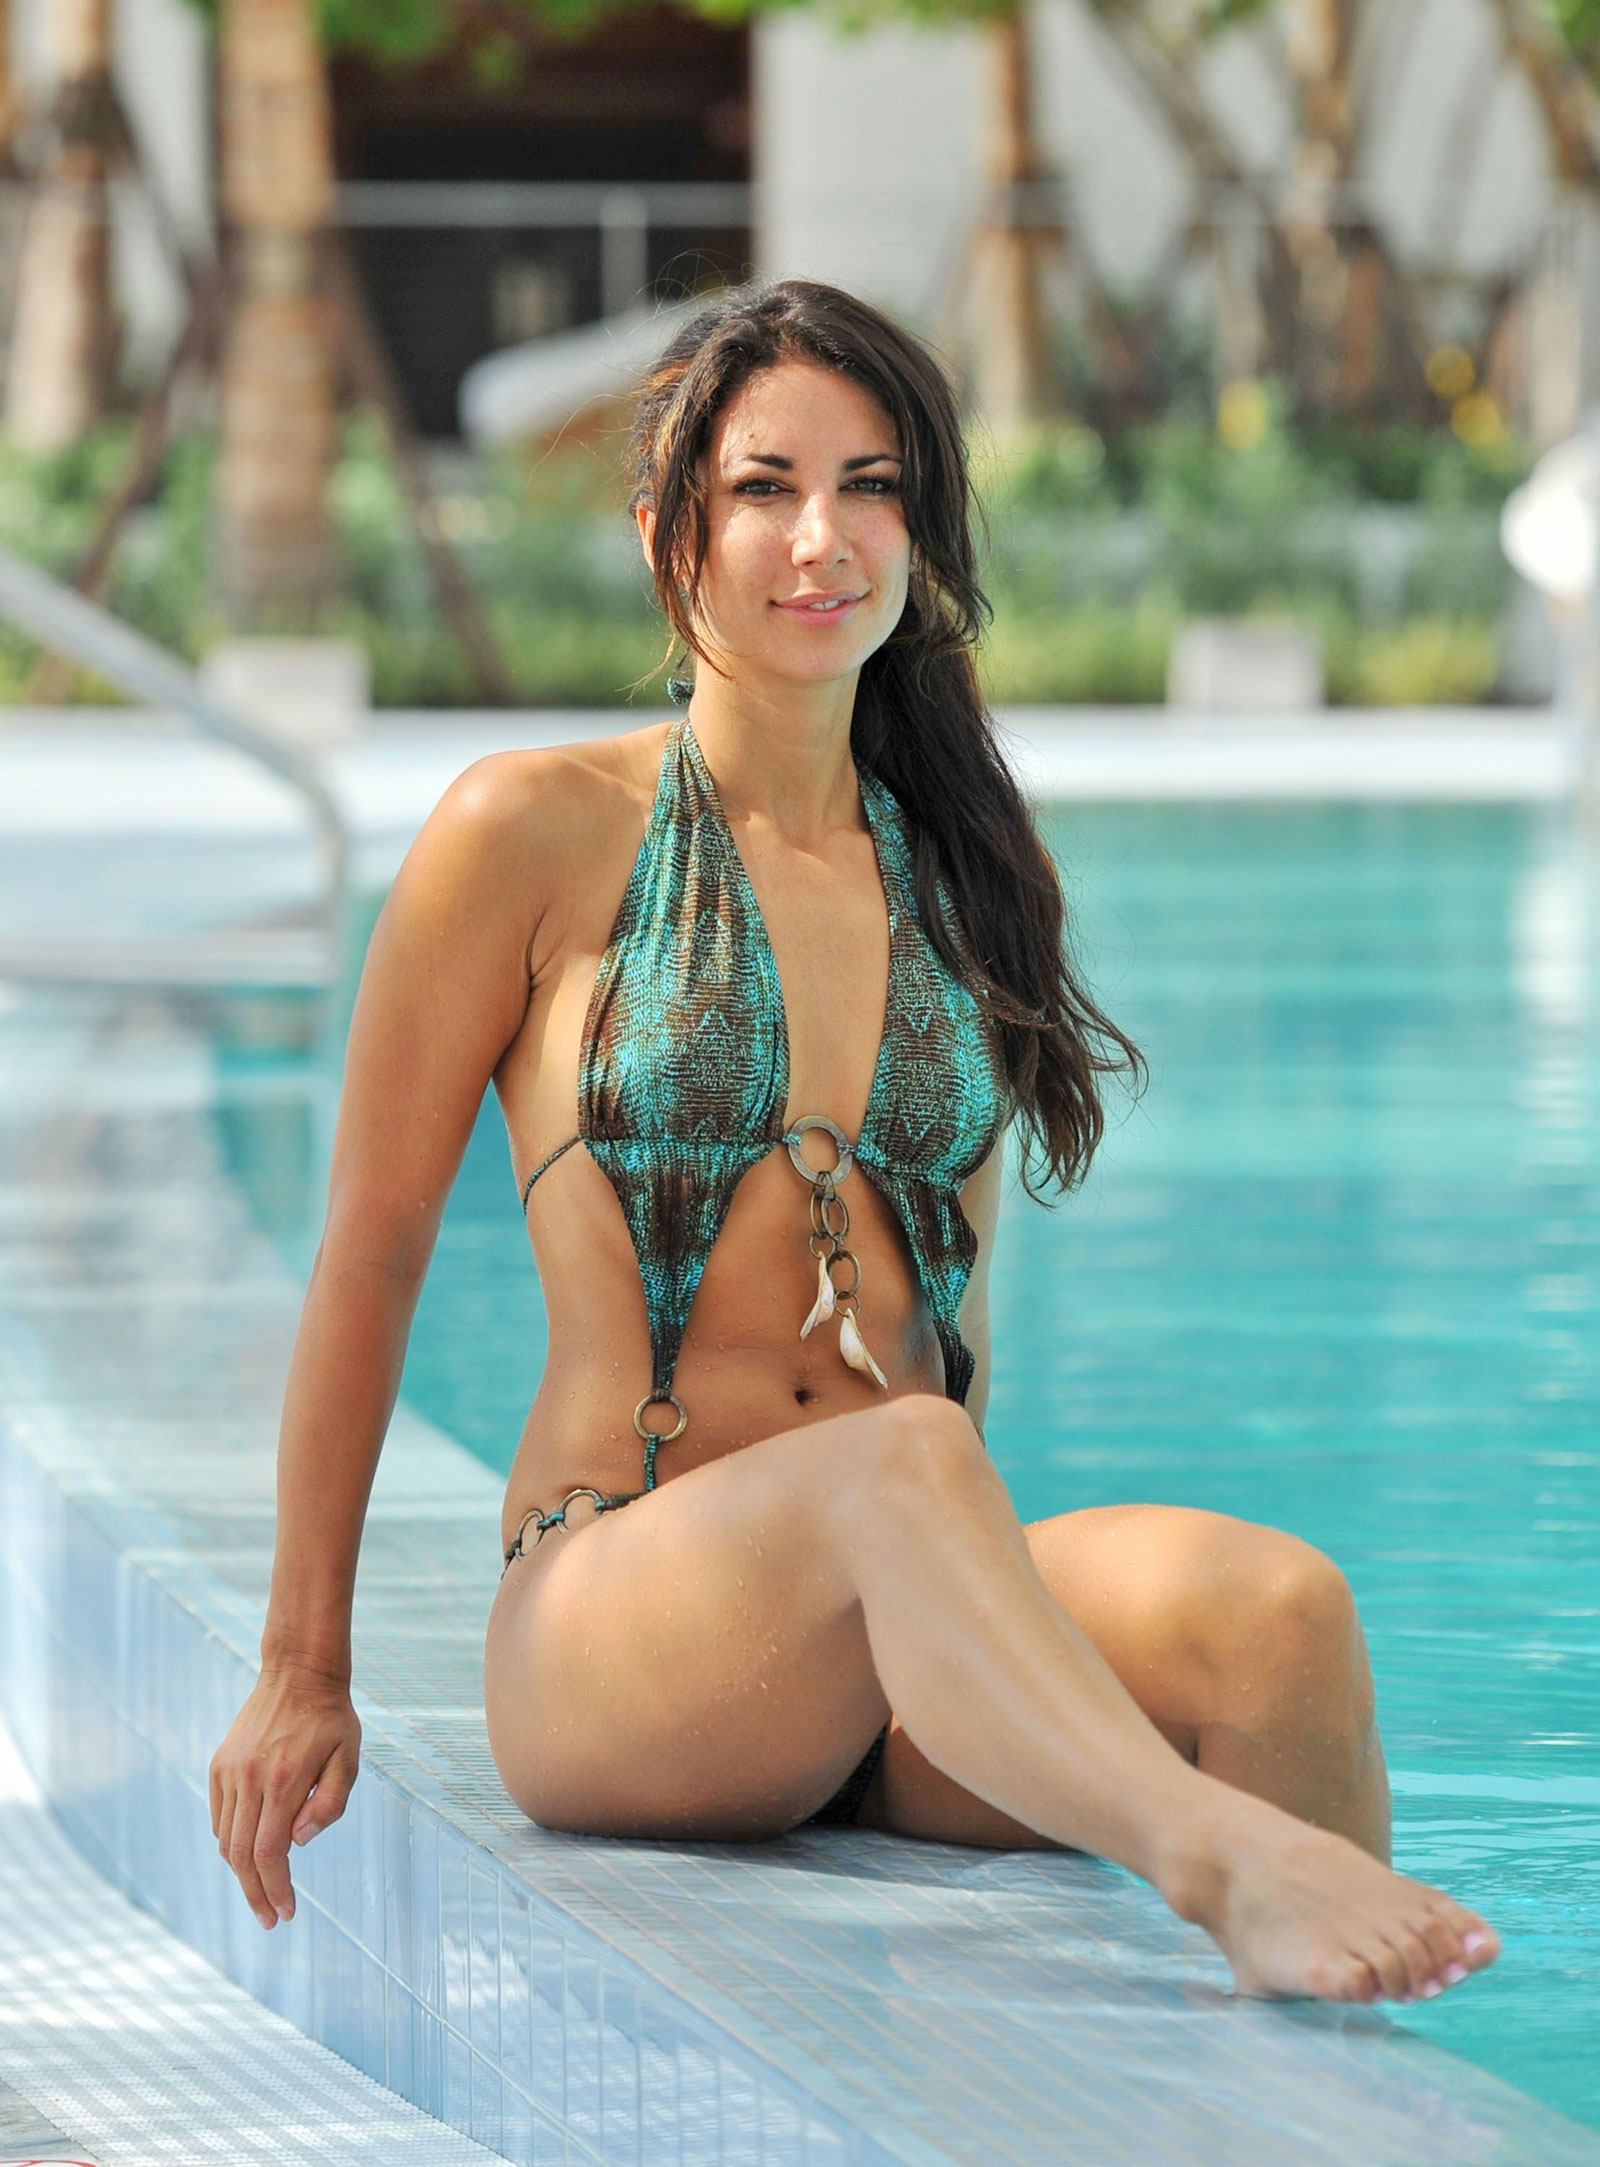 Leilani Dowding Bikini Candids at a Pool in Miami – HawtCelebs